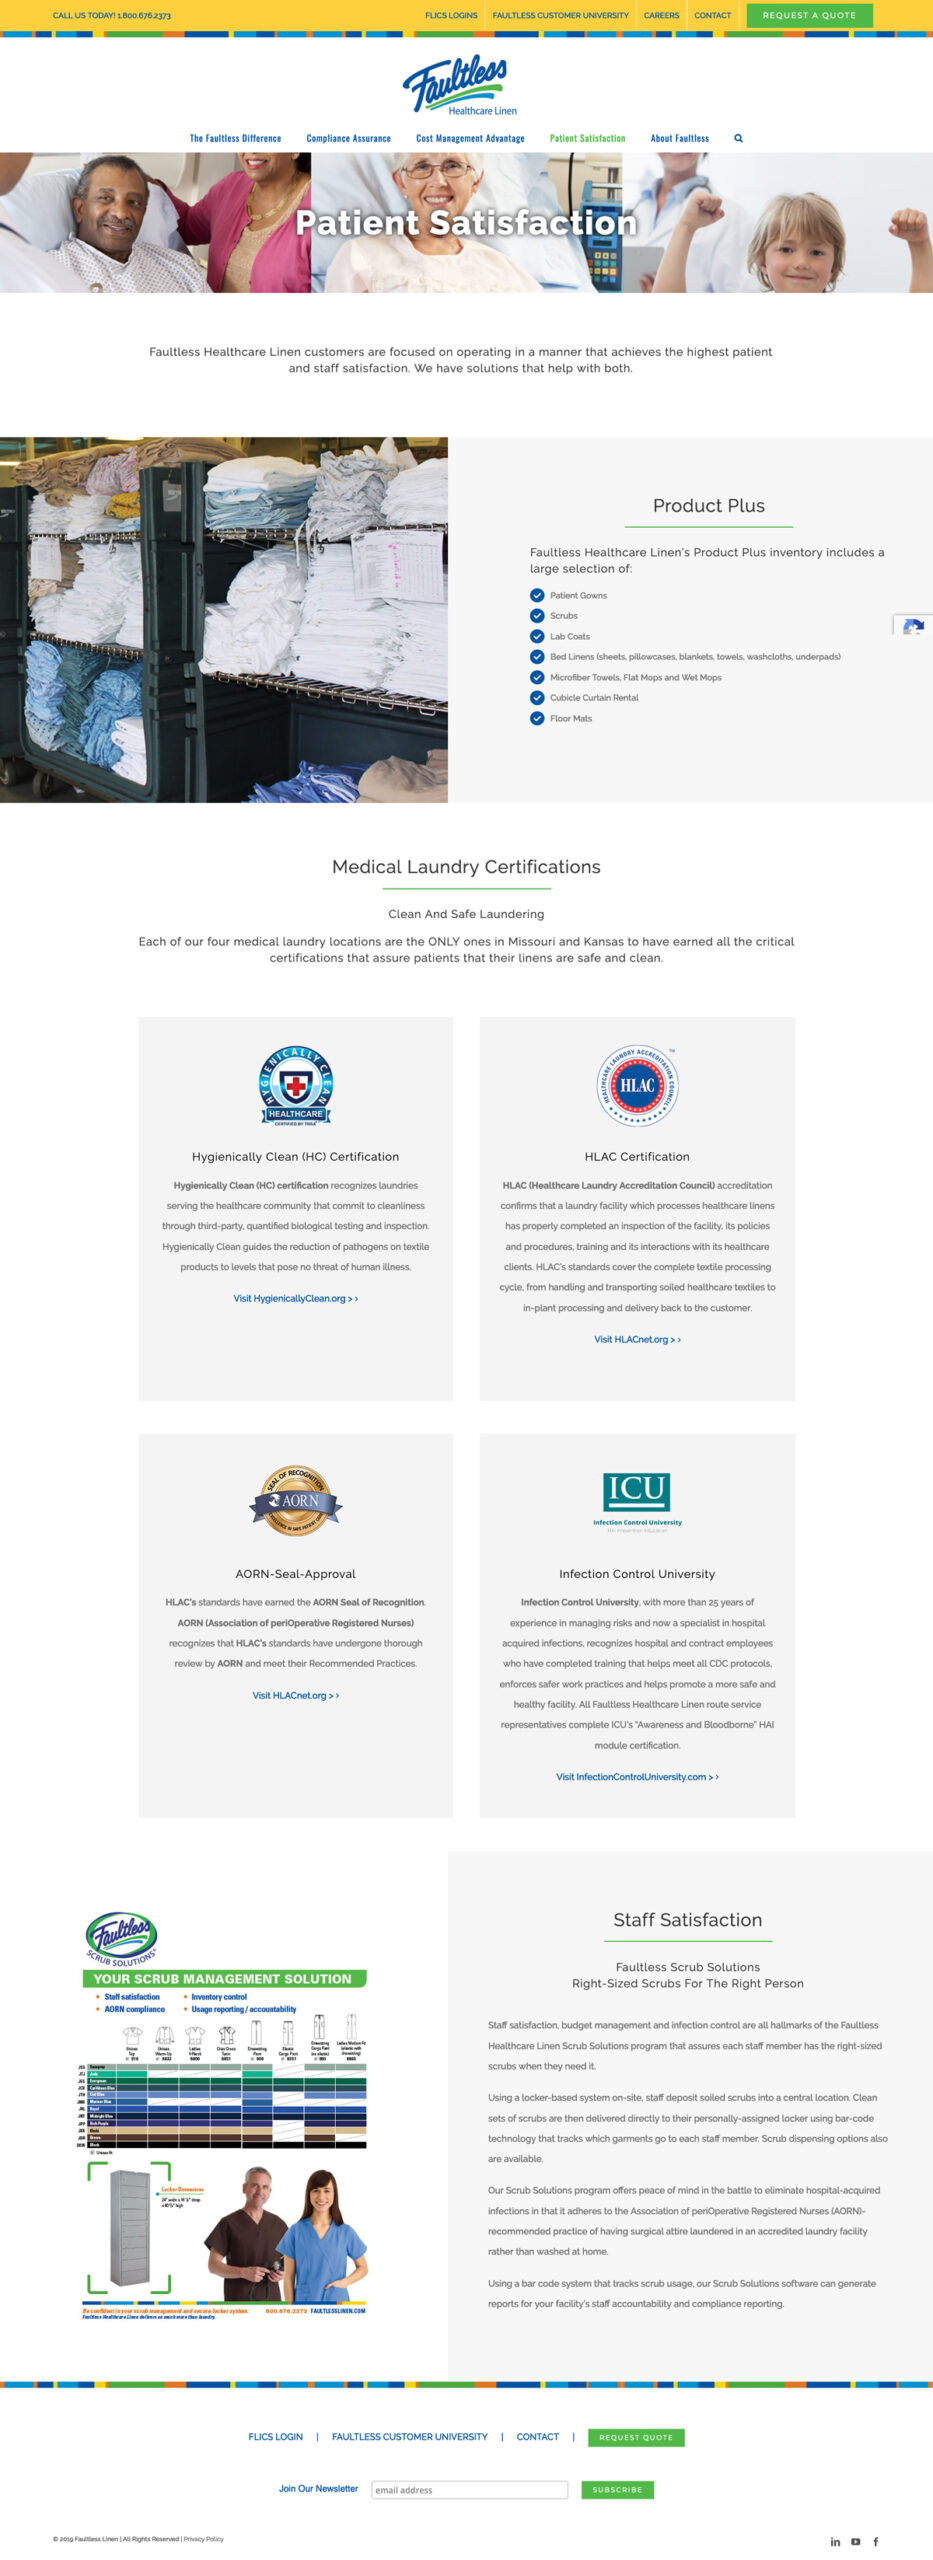 Company Website Design for Faultless Healthcare Linen Patient Satisfation